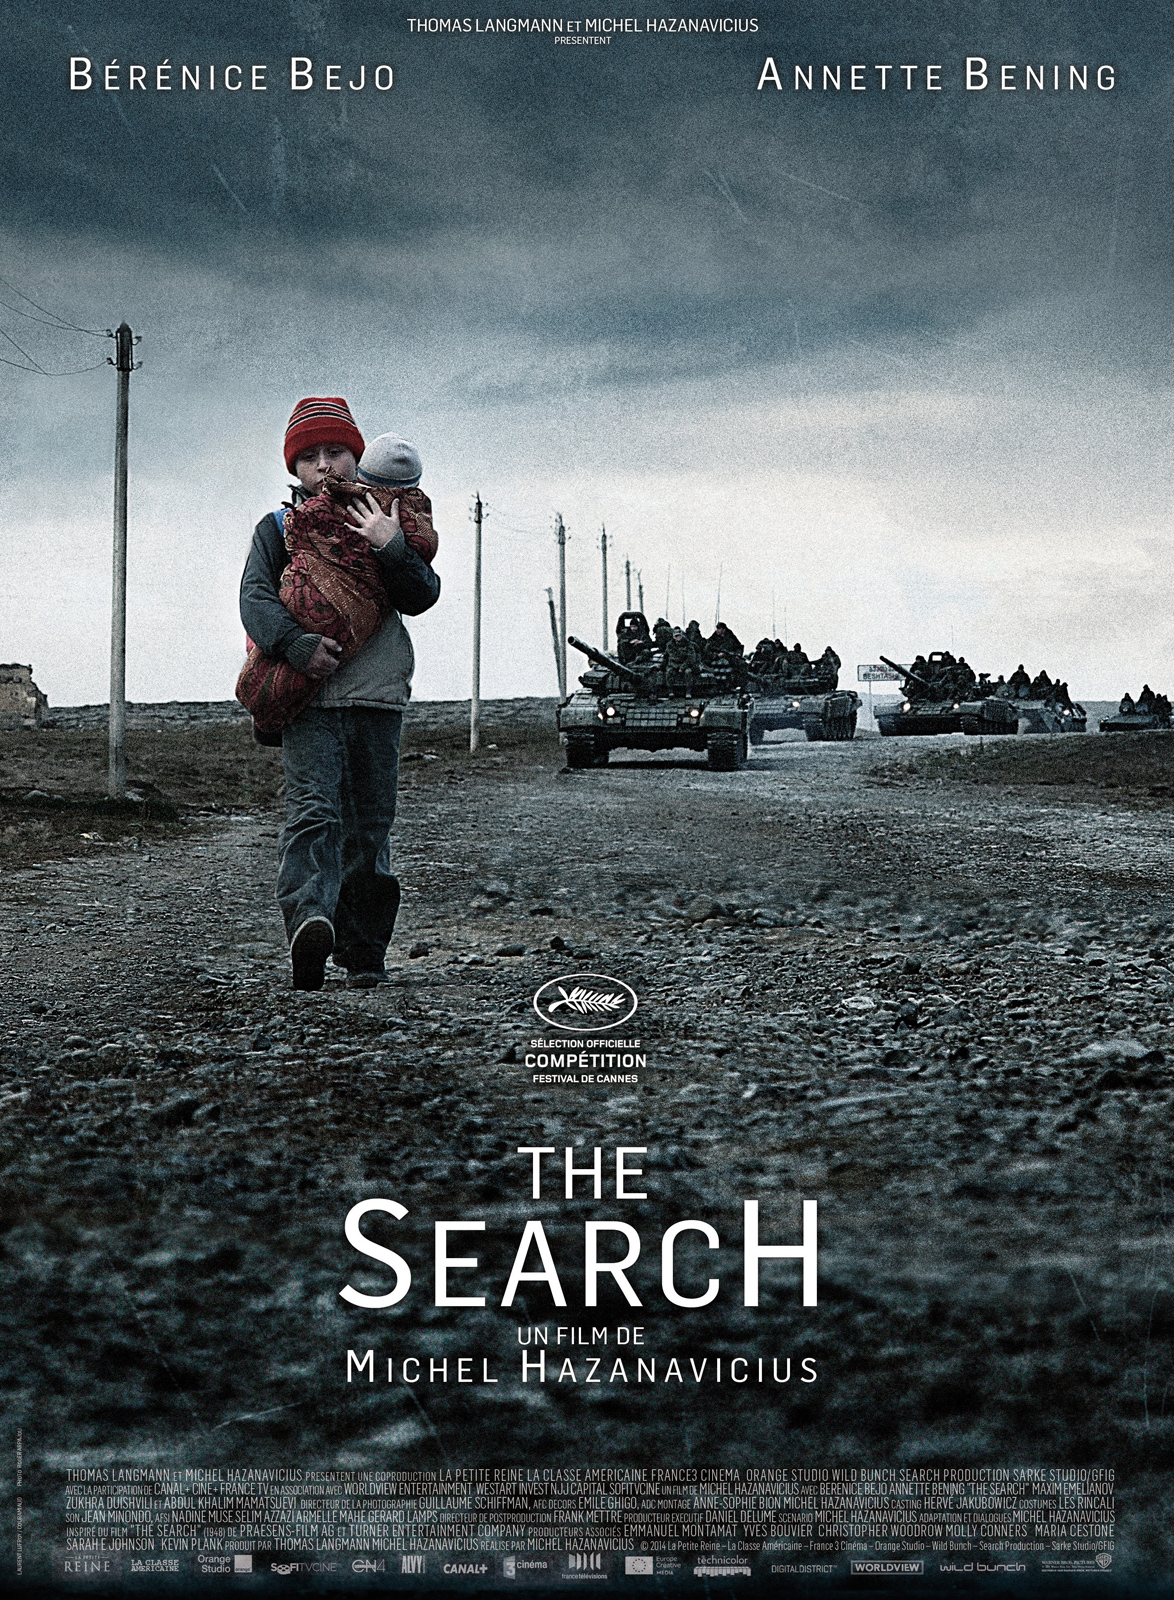 The search: la locandina del film